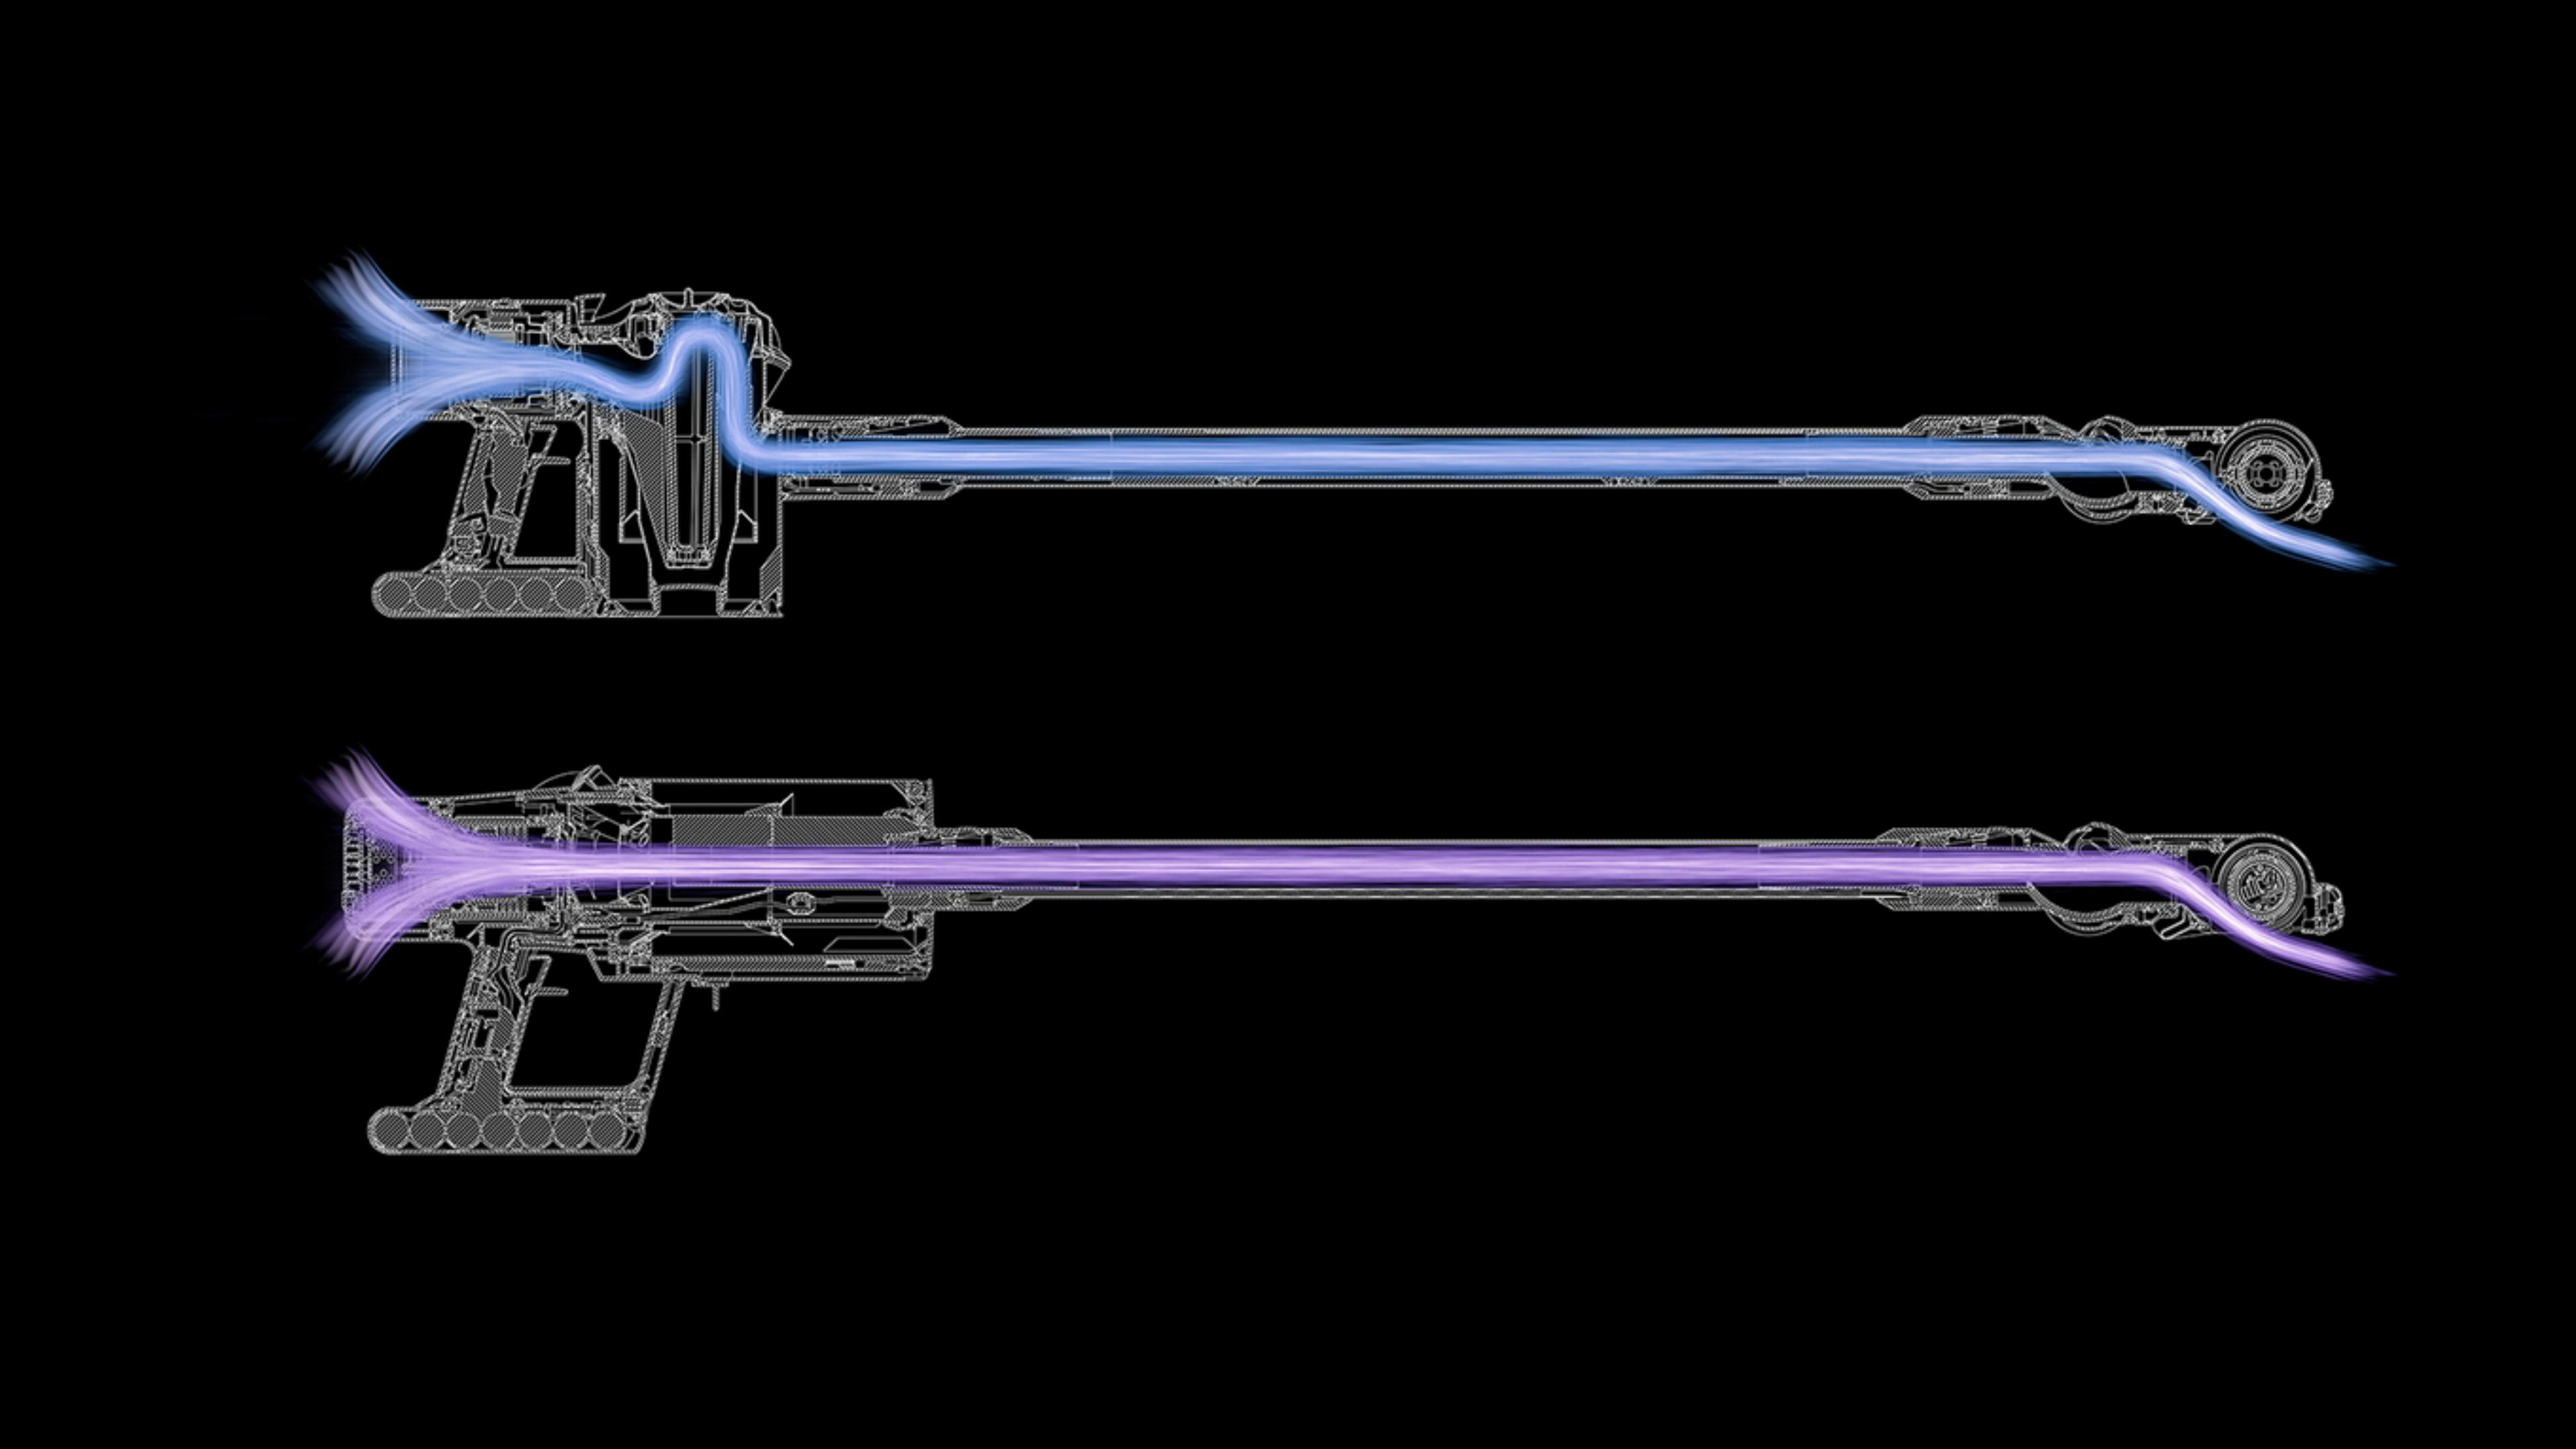 Dyson V11 side by side with a Dyson V8 to illustrate the in-line configuration